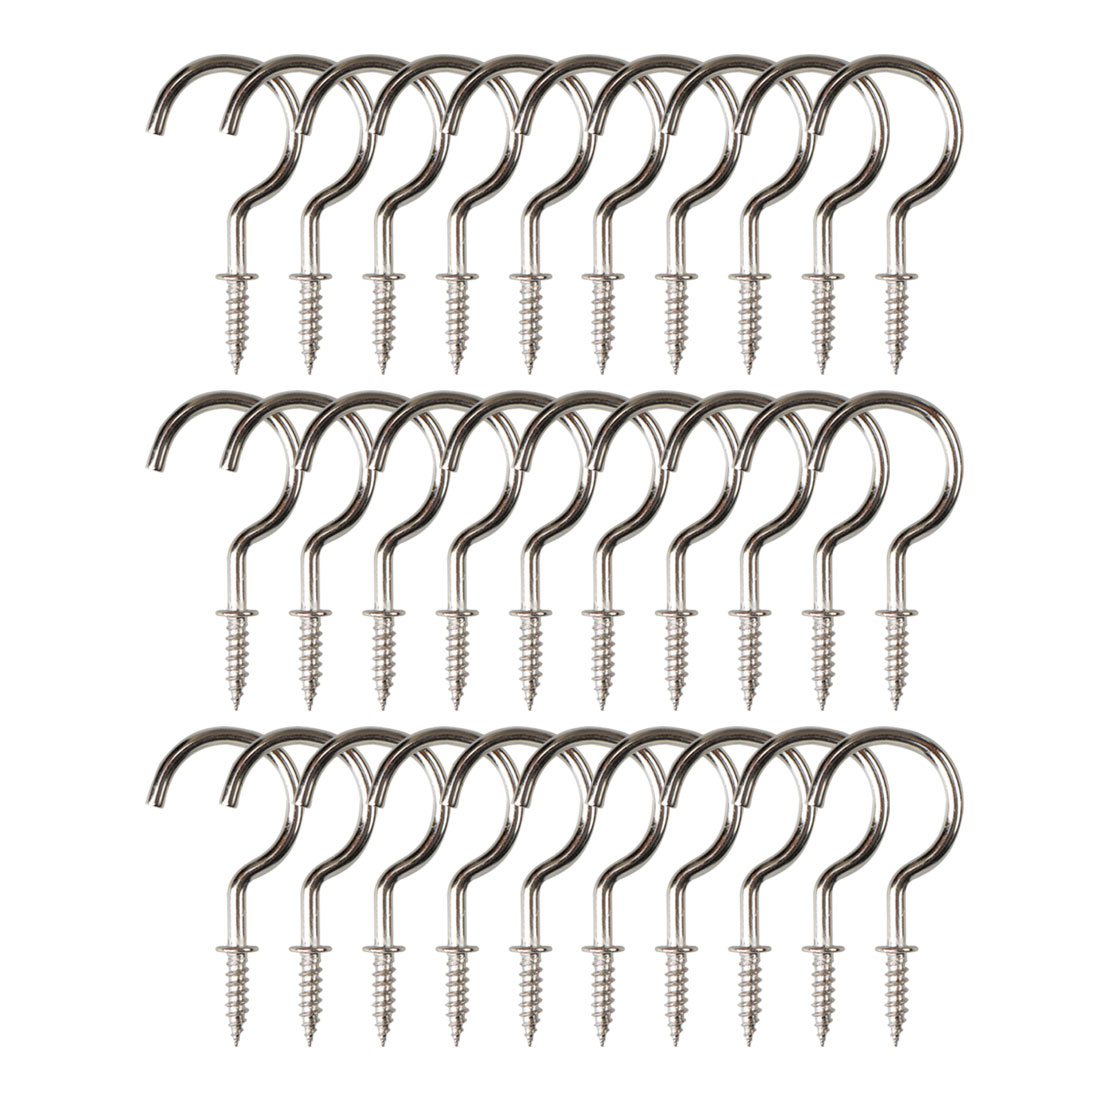 30pcs Cup Ceiling Hooks 7/8 Inch Nickel Plating Metal Screw for Home Office Cup